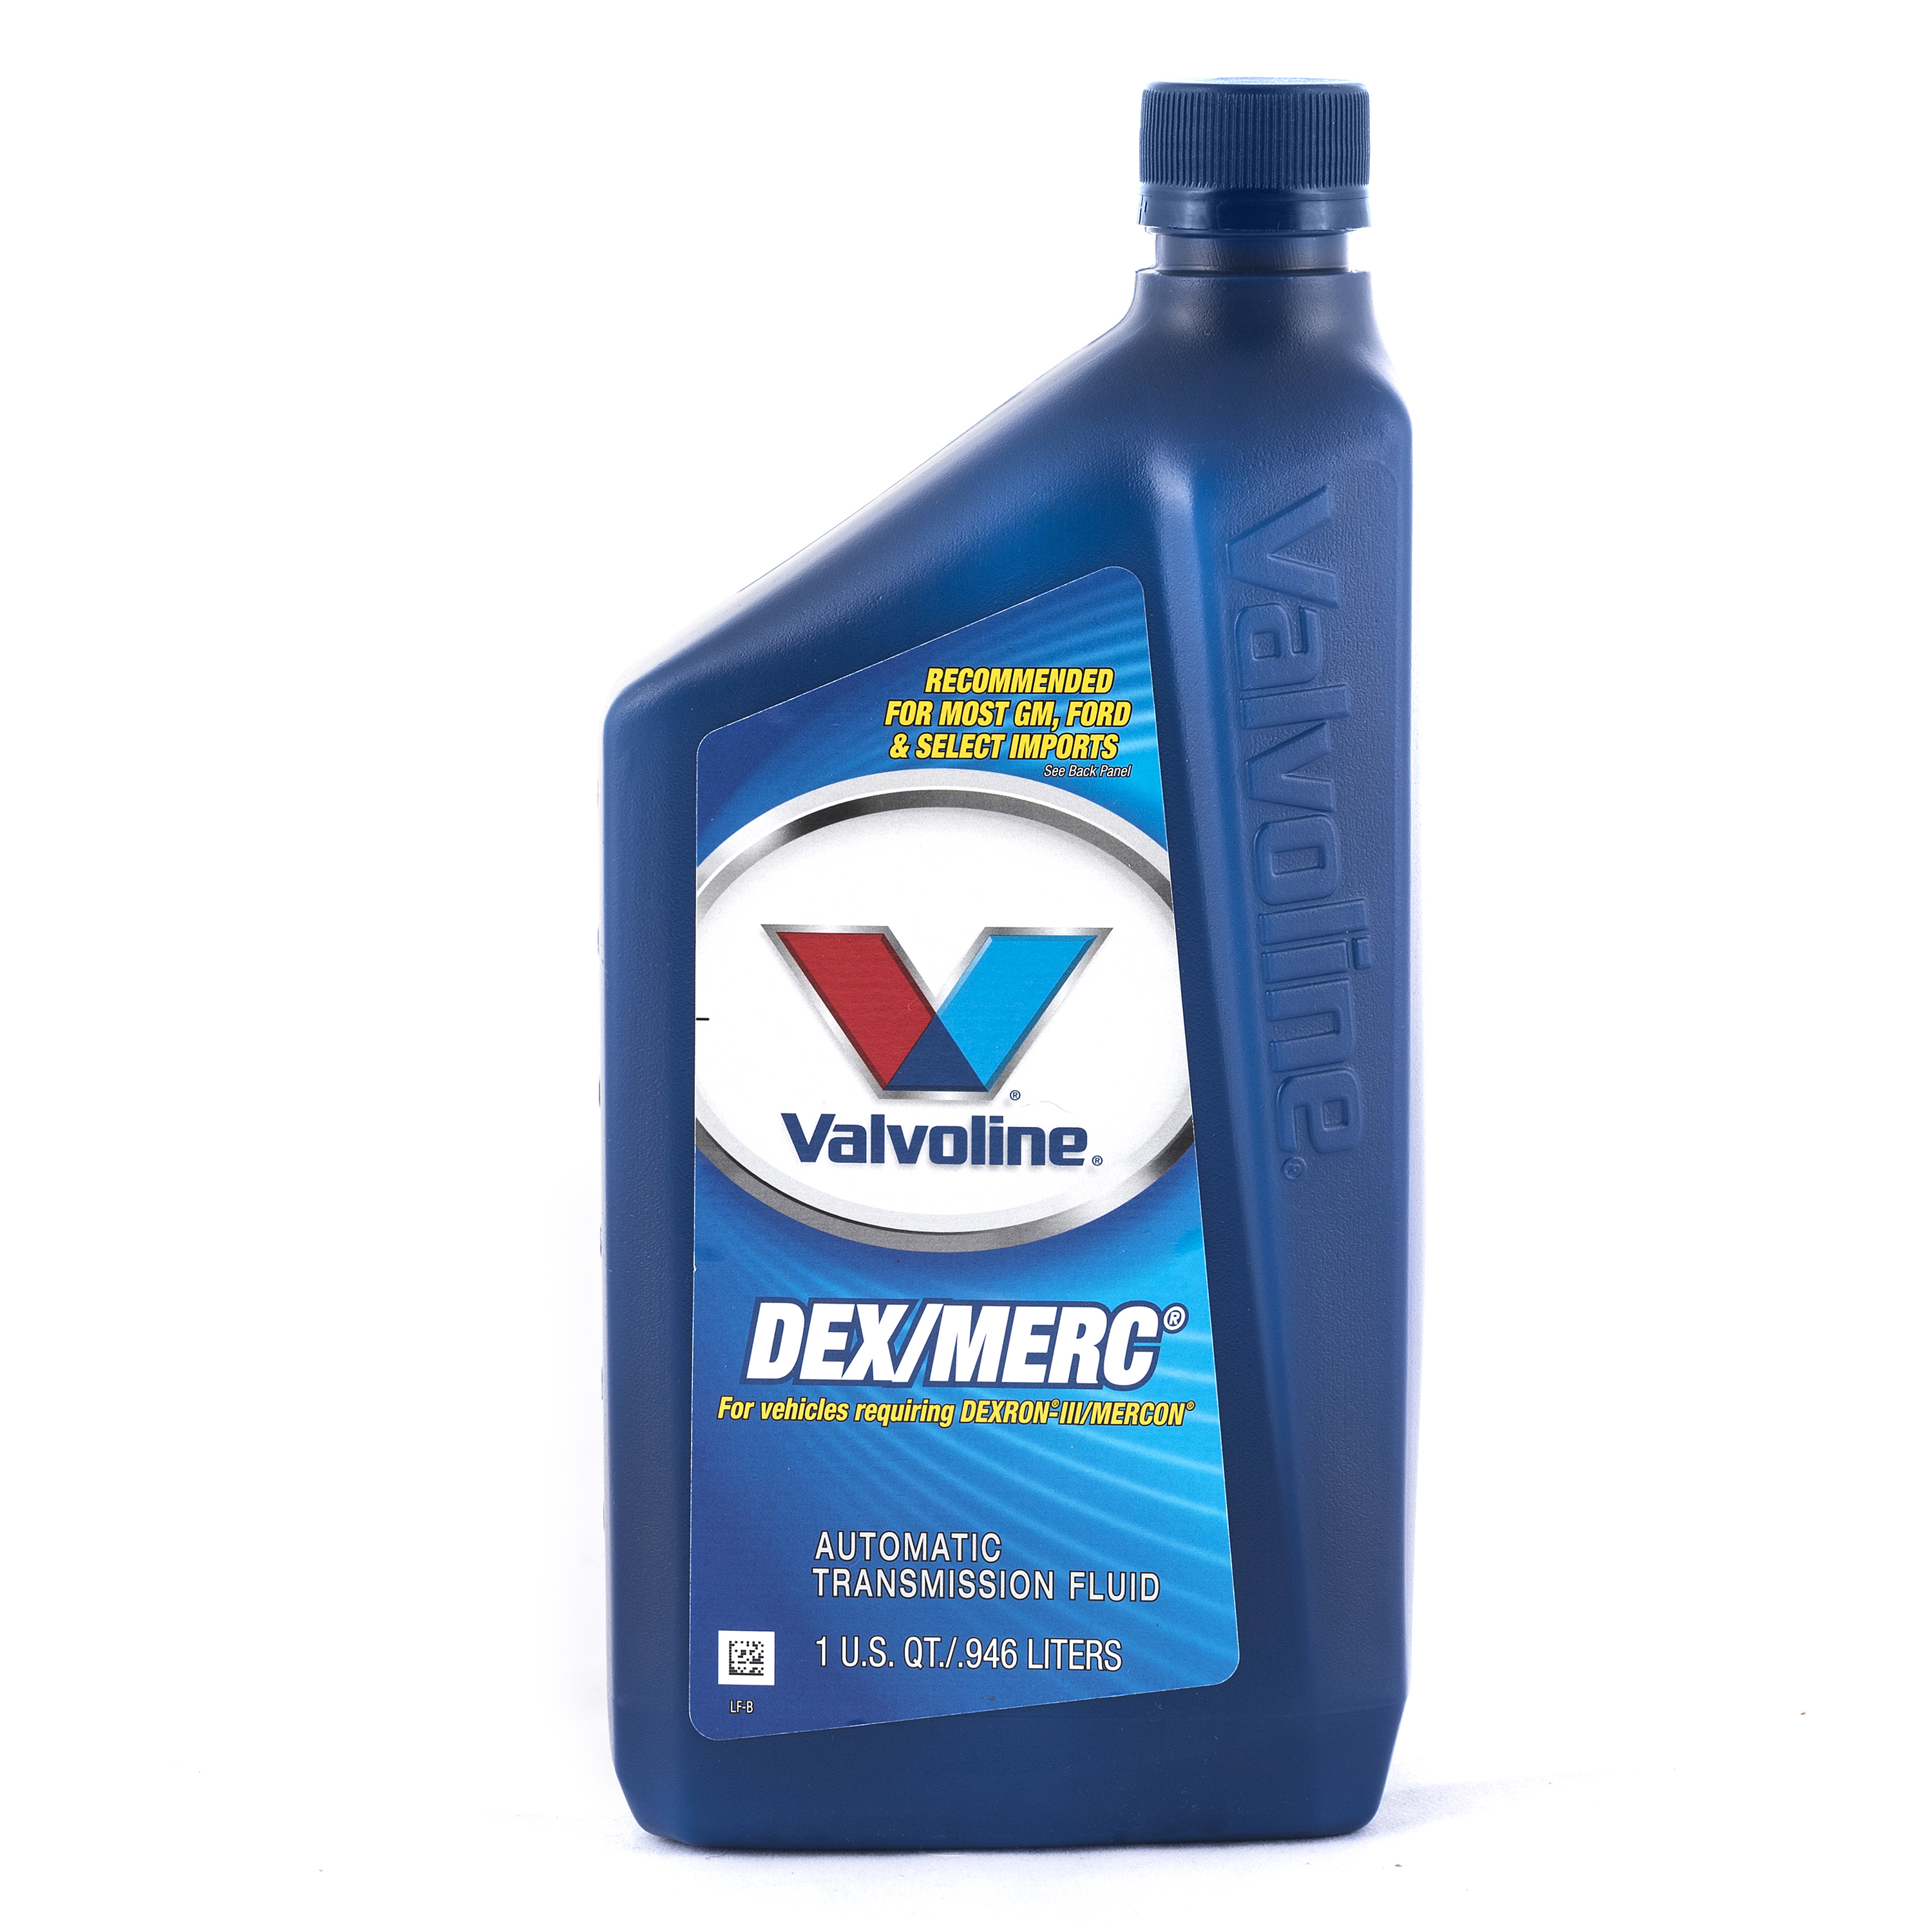 Valvoline DEX/MERC Automatic Transmission Fluid, 1 Quart